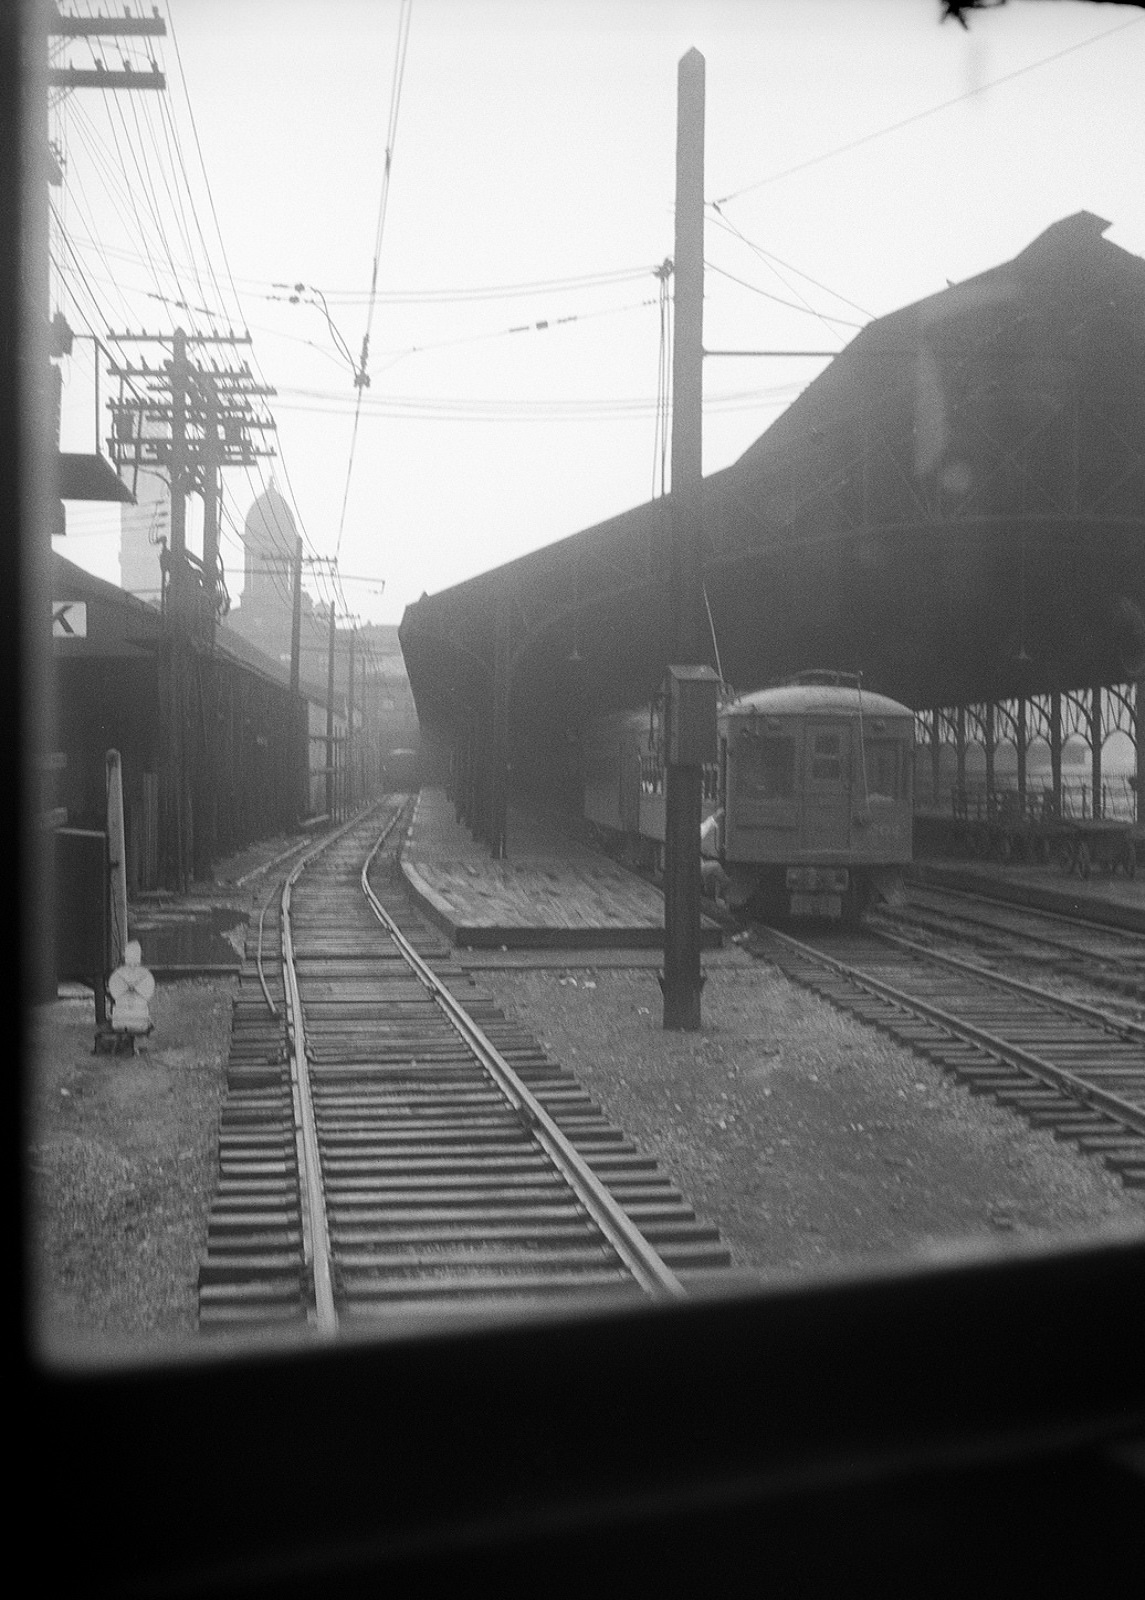 Baltimore &Annapolis Railroad Car at Camden Station. Baltimore, Maryland Date: 1940's. Source: Hugh Hayes Collection.